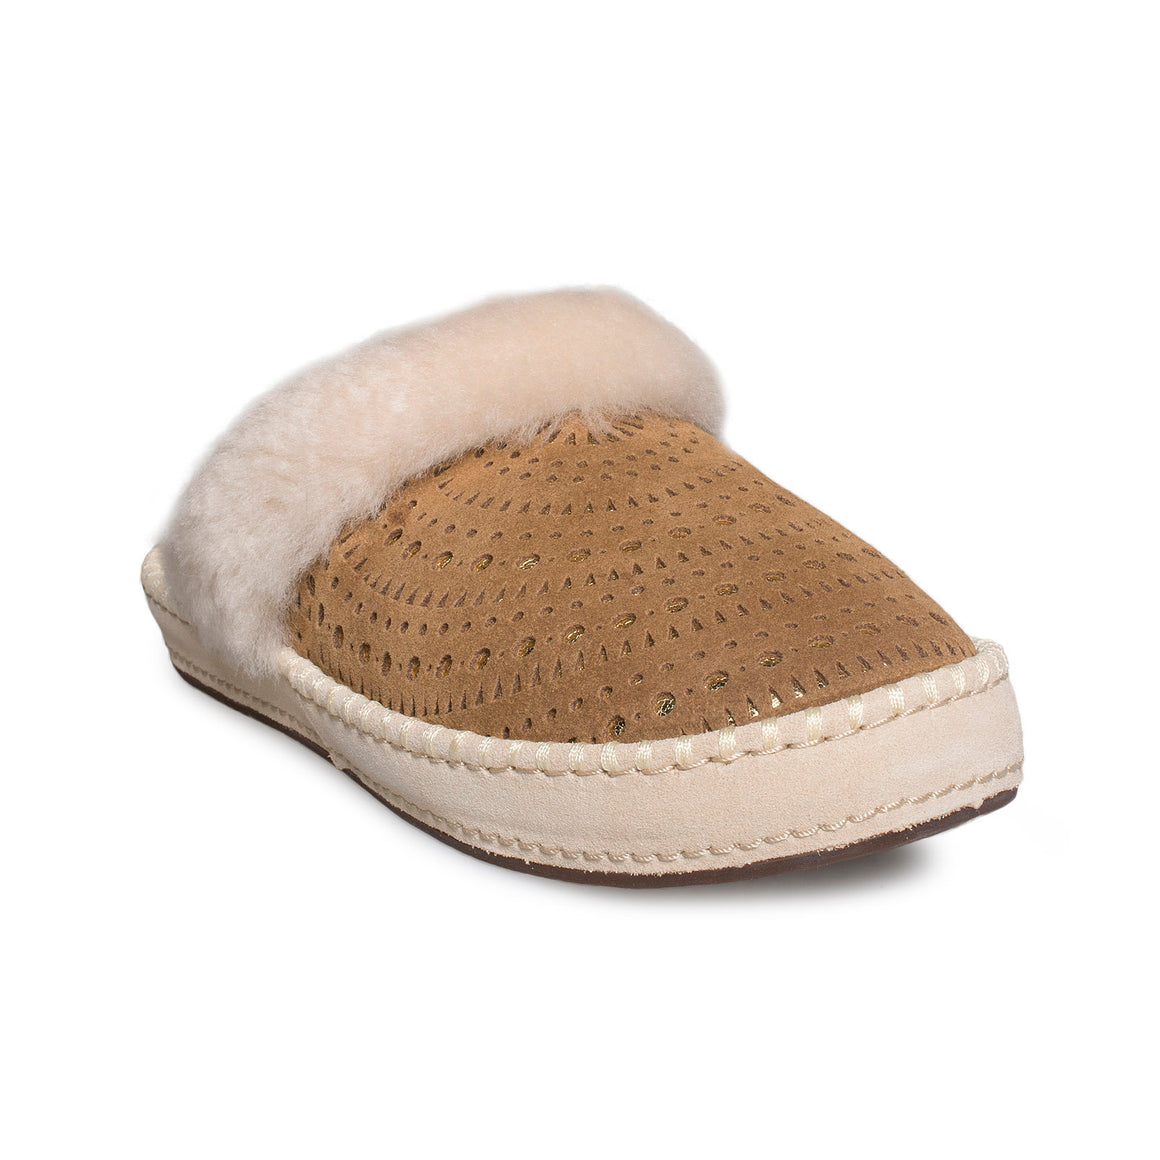 UGG Aira Sunshine Perf Chestnut Slippers - Women's